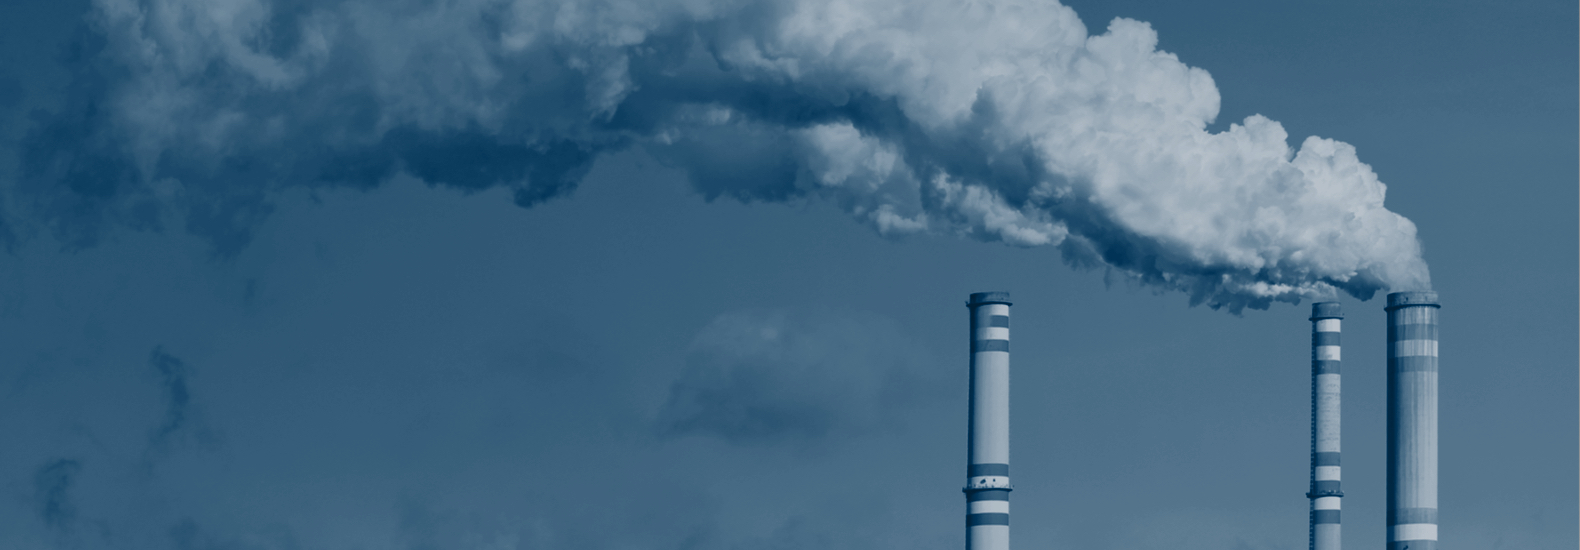 Air pollution from smokestacks